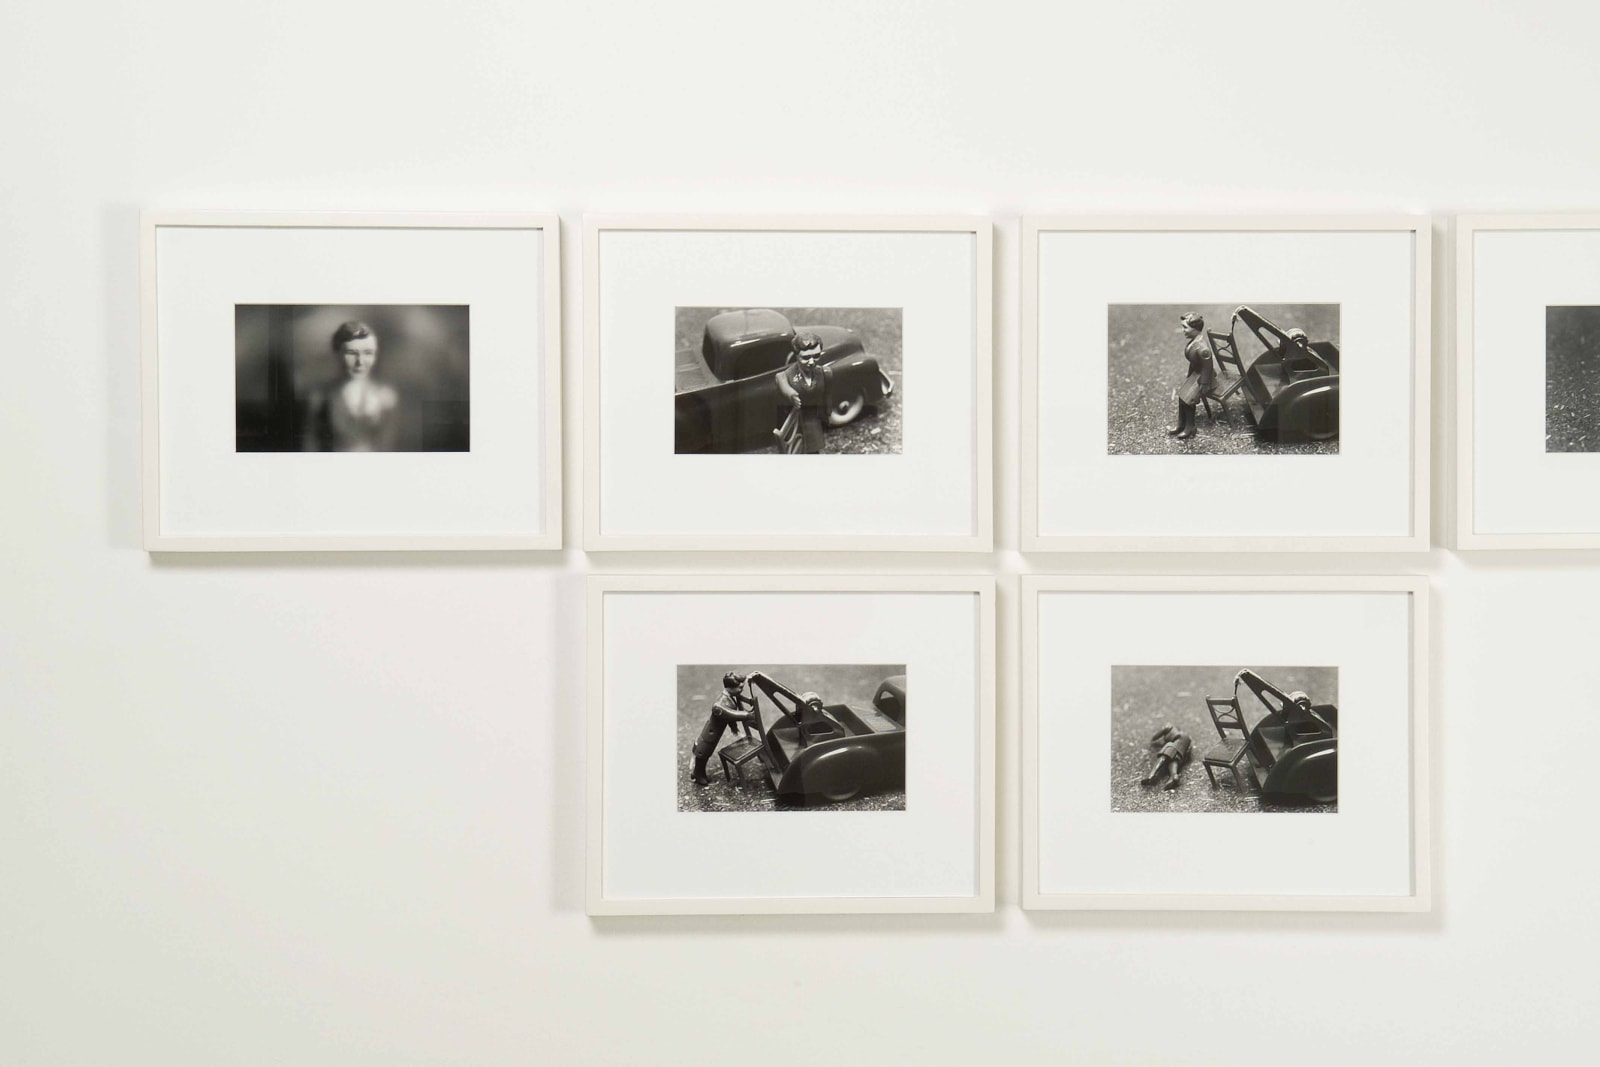 Laurie Simmons, In and Around the House, Photographs 1976-78, Exhibition view, 21 December 2008 - 21 March 2009, Erna Hecey Gallery, Brussels